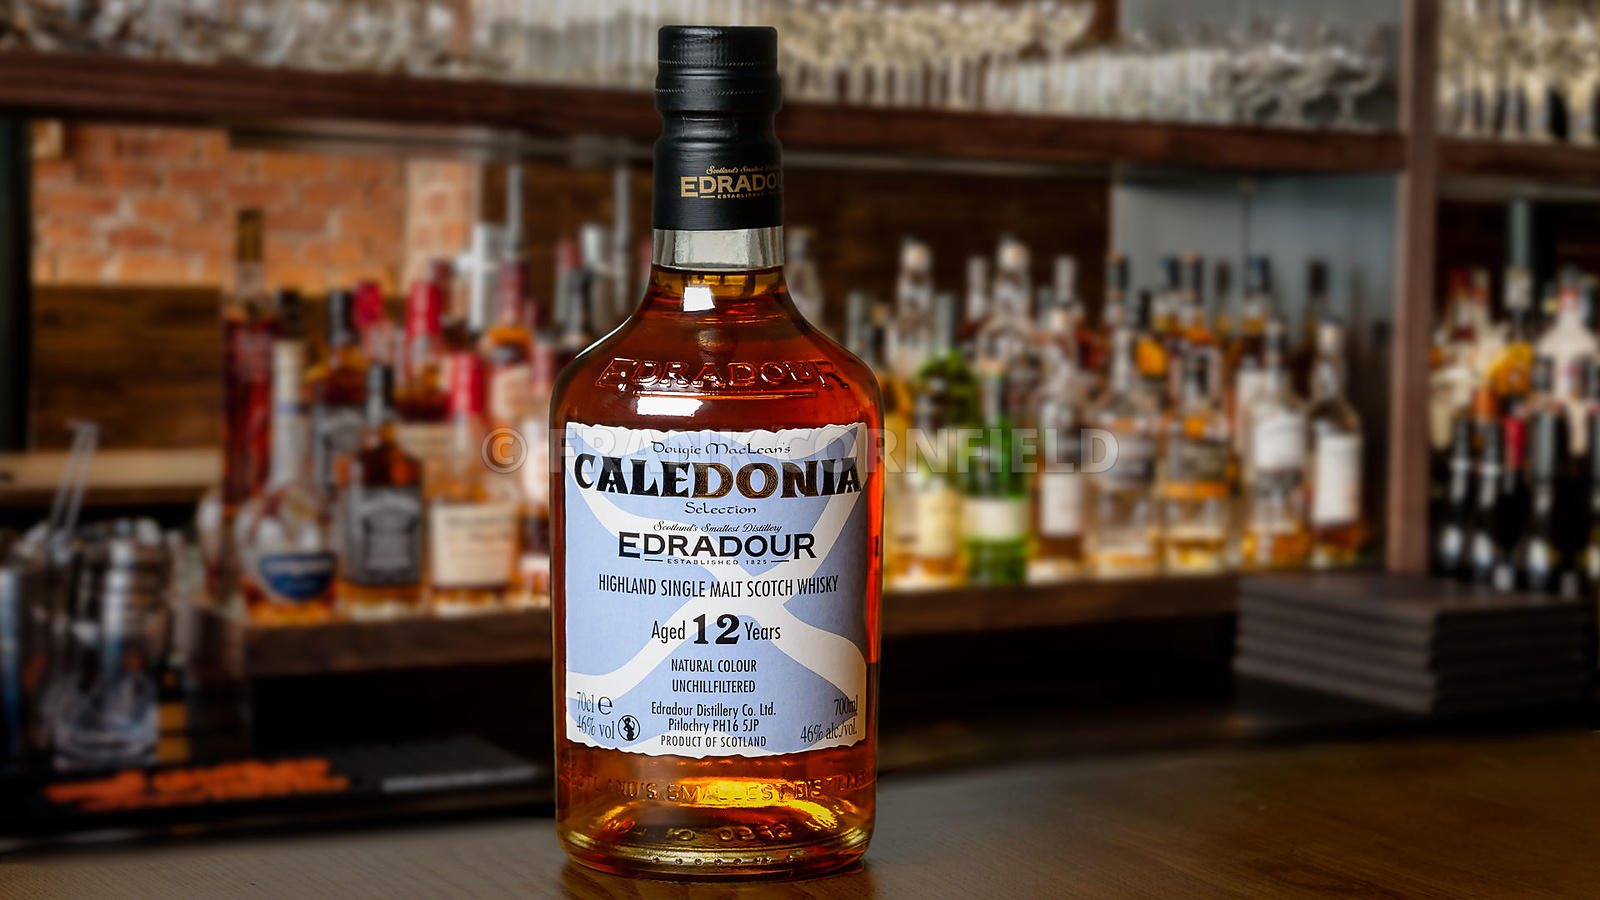 Edradour 12 year old scotch whisky